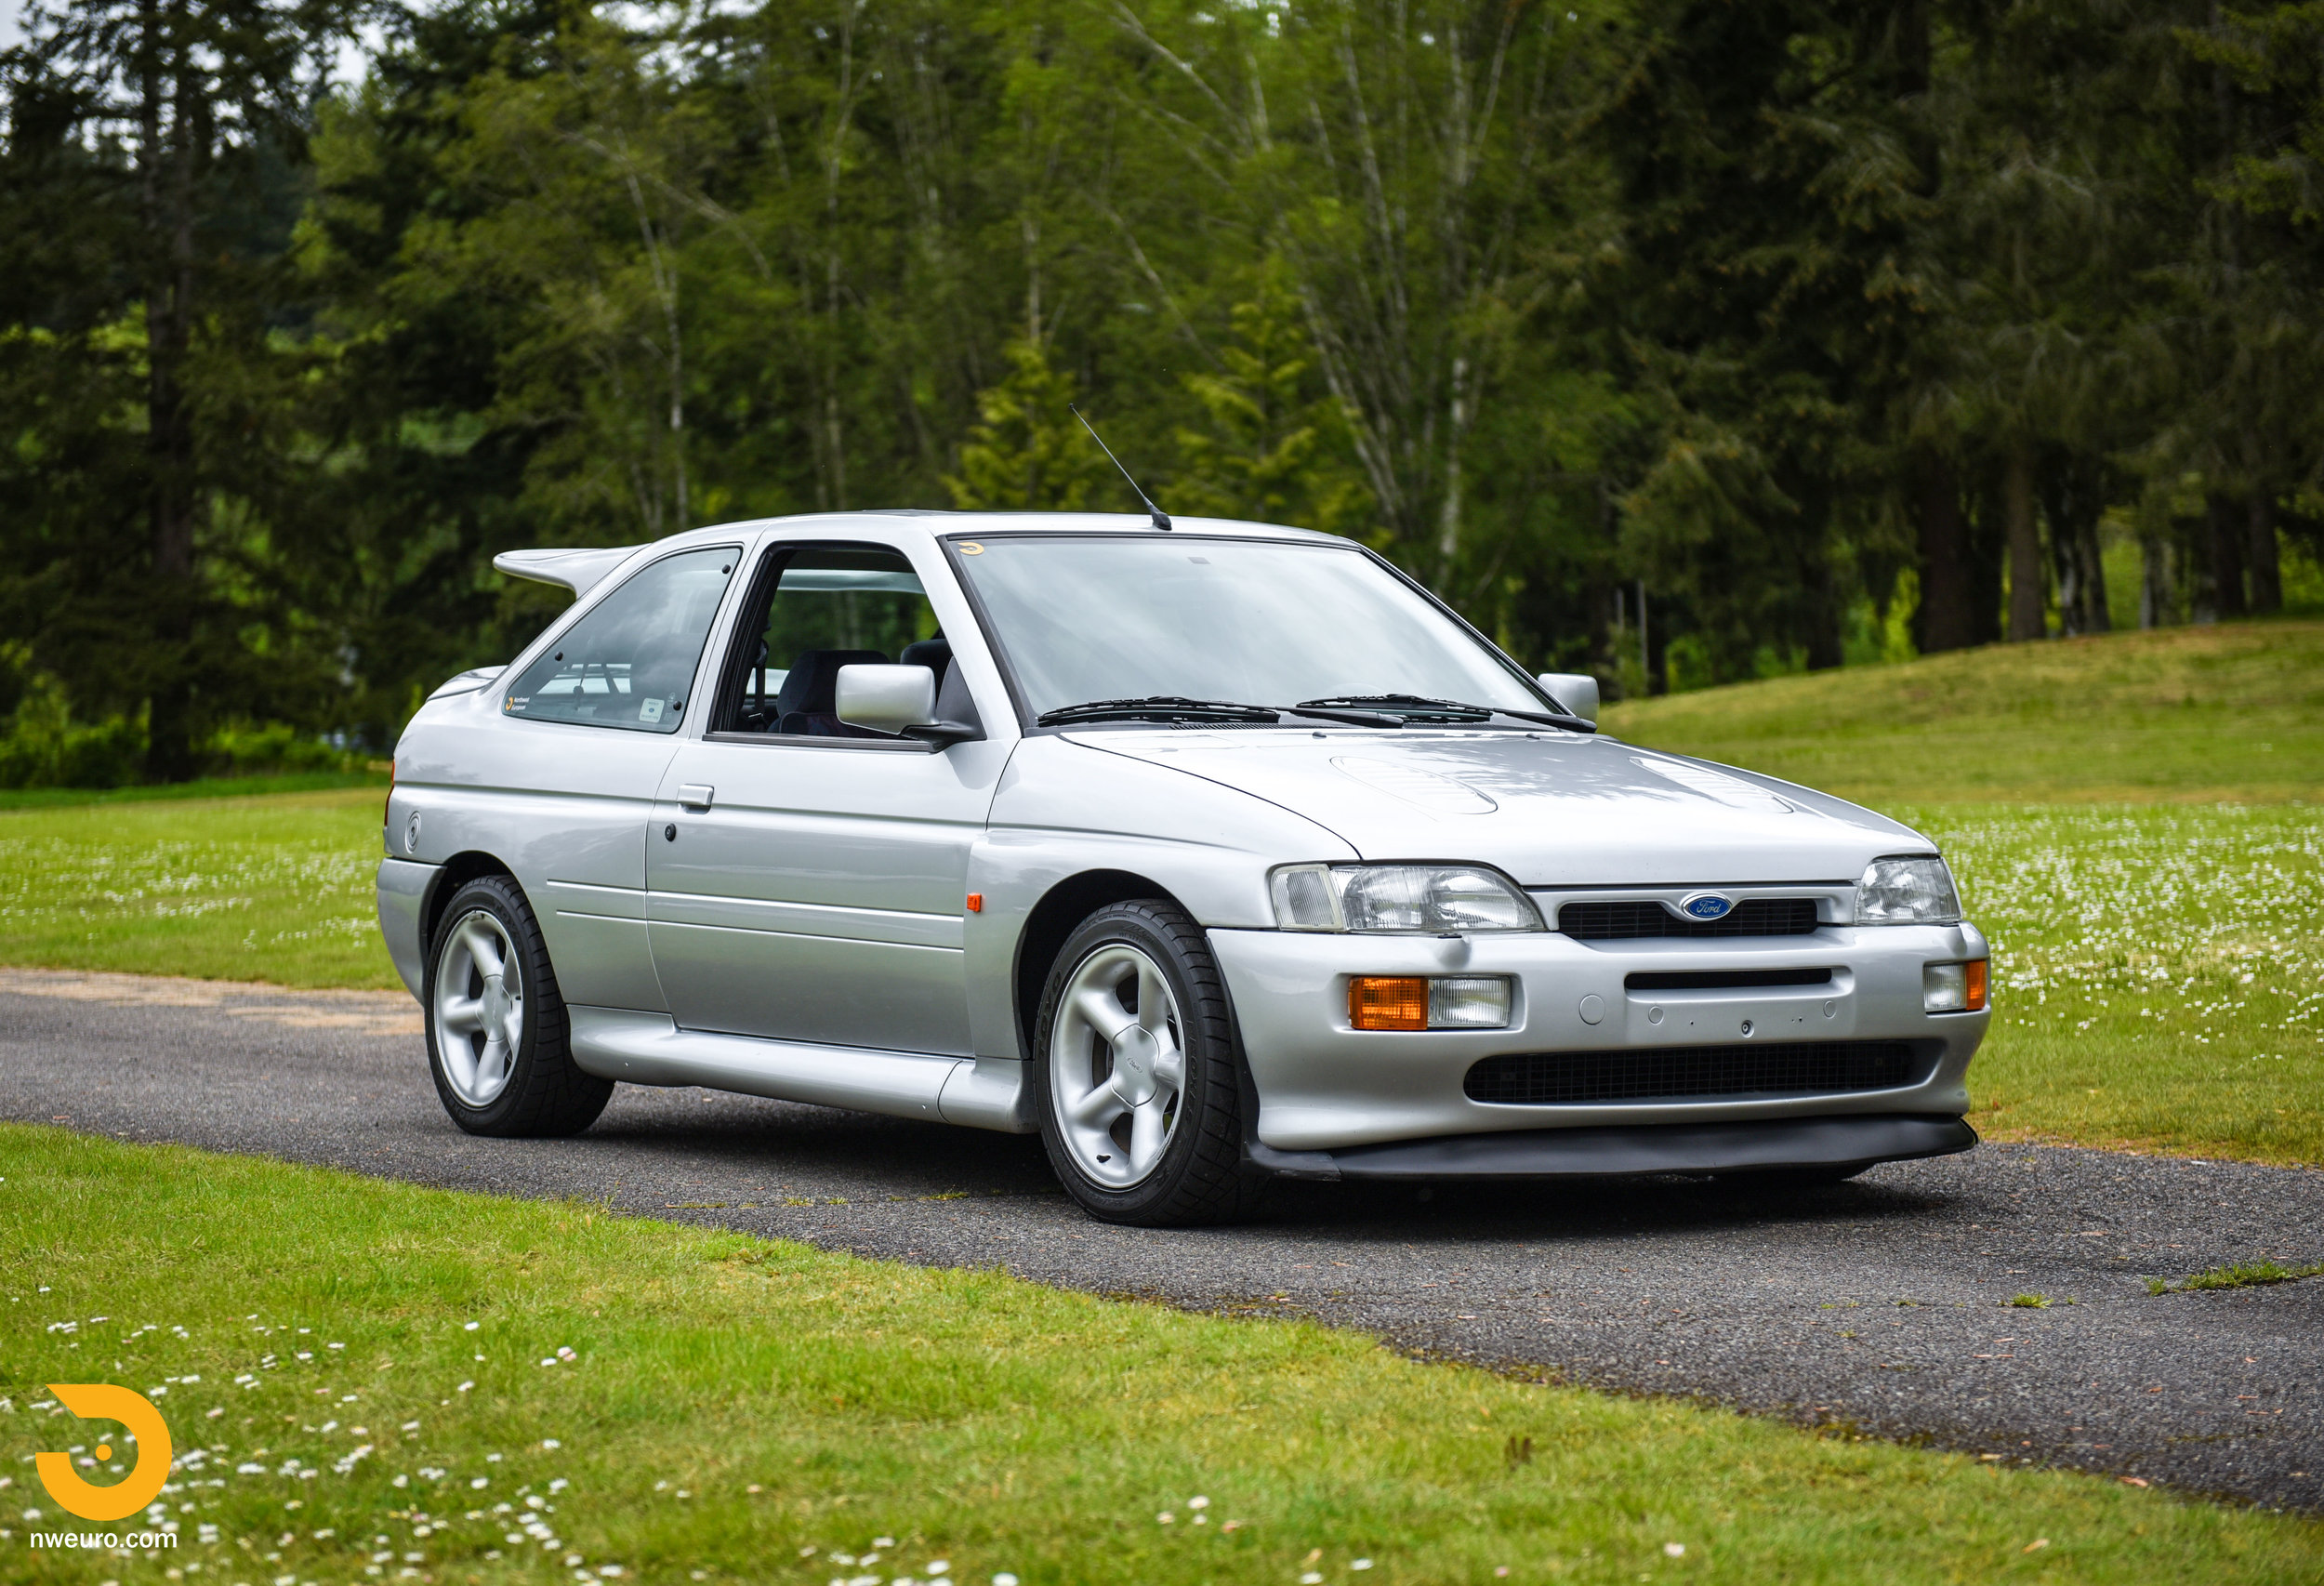 1995 Ford Escort Cosworth RS Silver-9.jpg